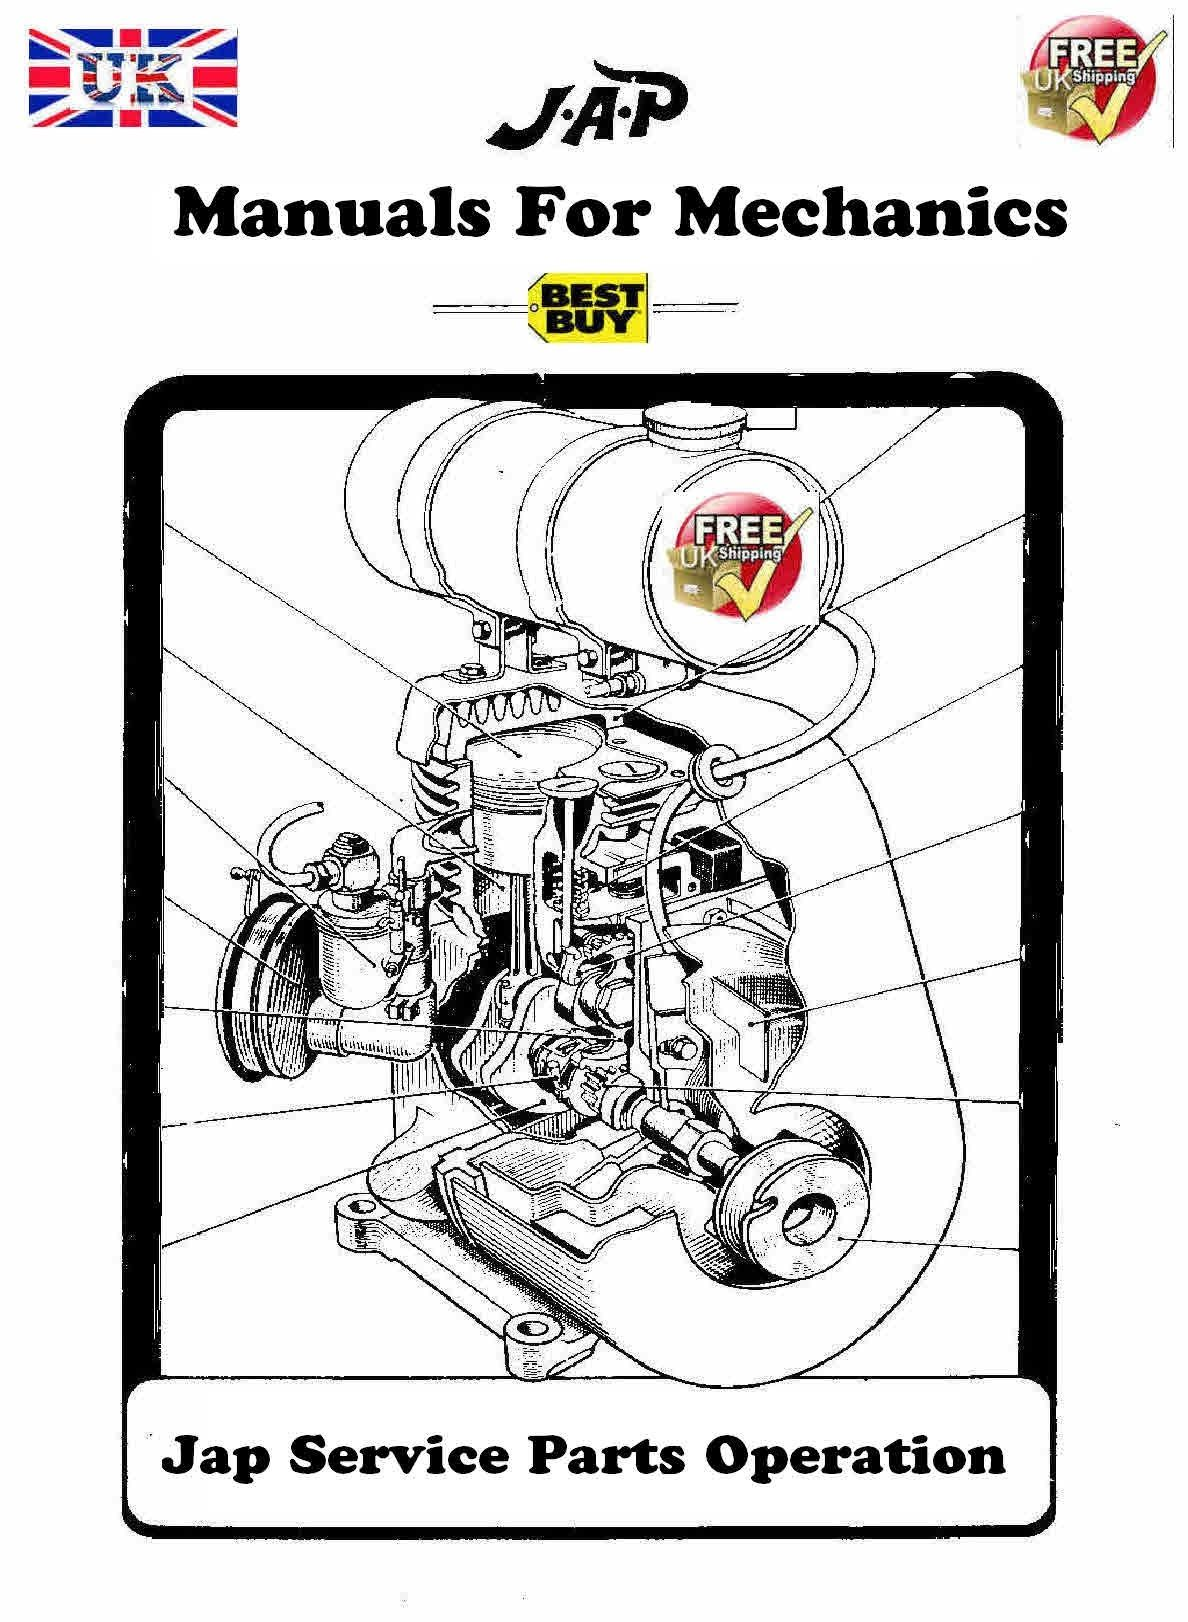 Pin on Vintage Auto Manual covers